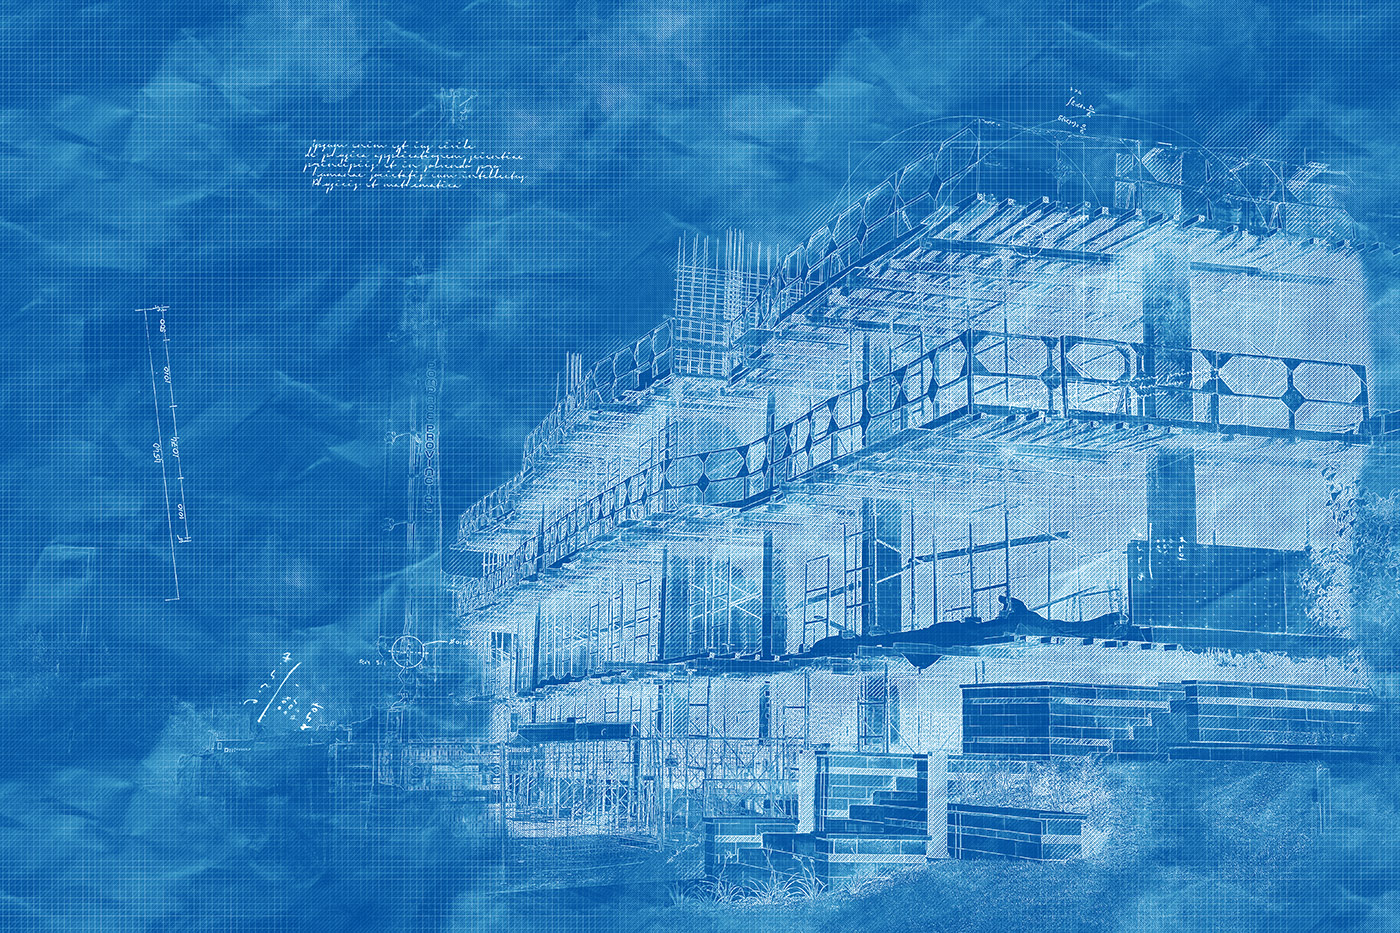 Construction Project Blueprint Sketch Image - Stock Photography